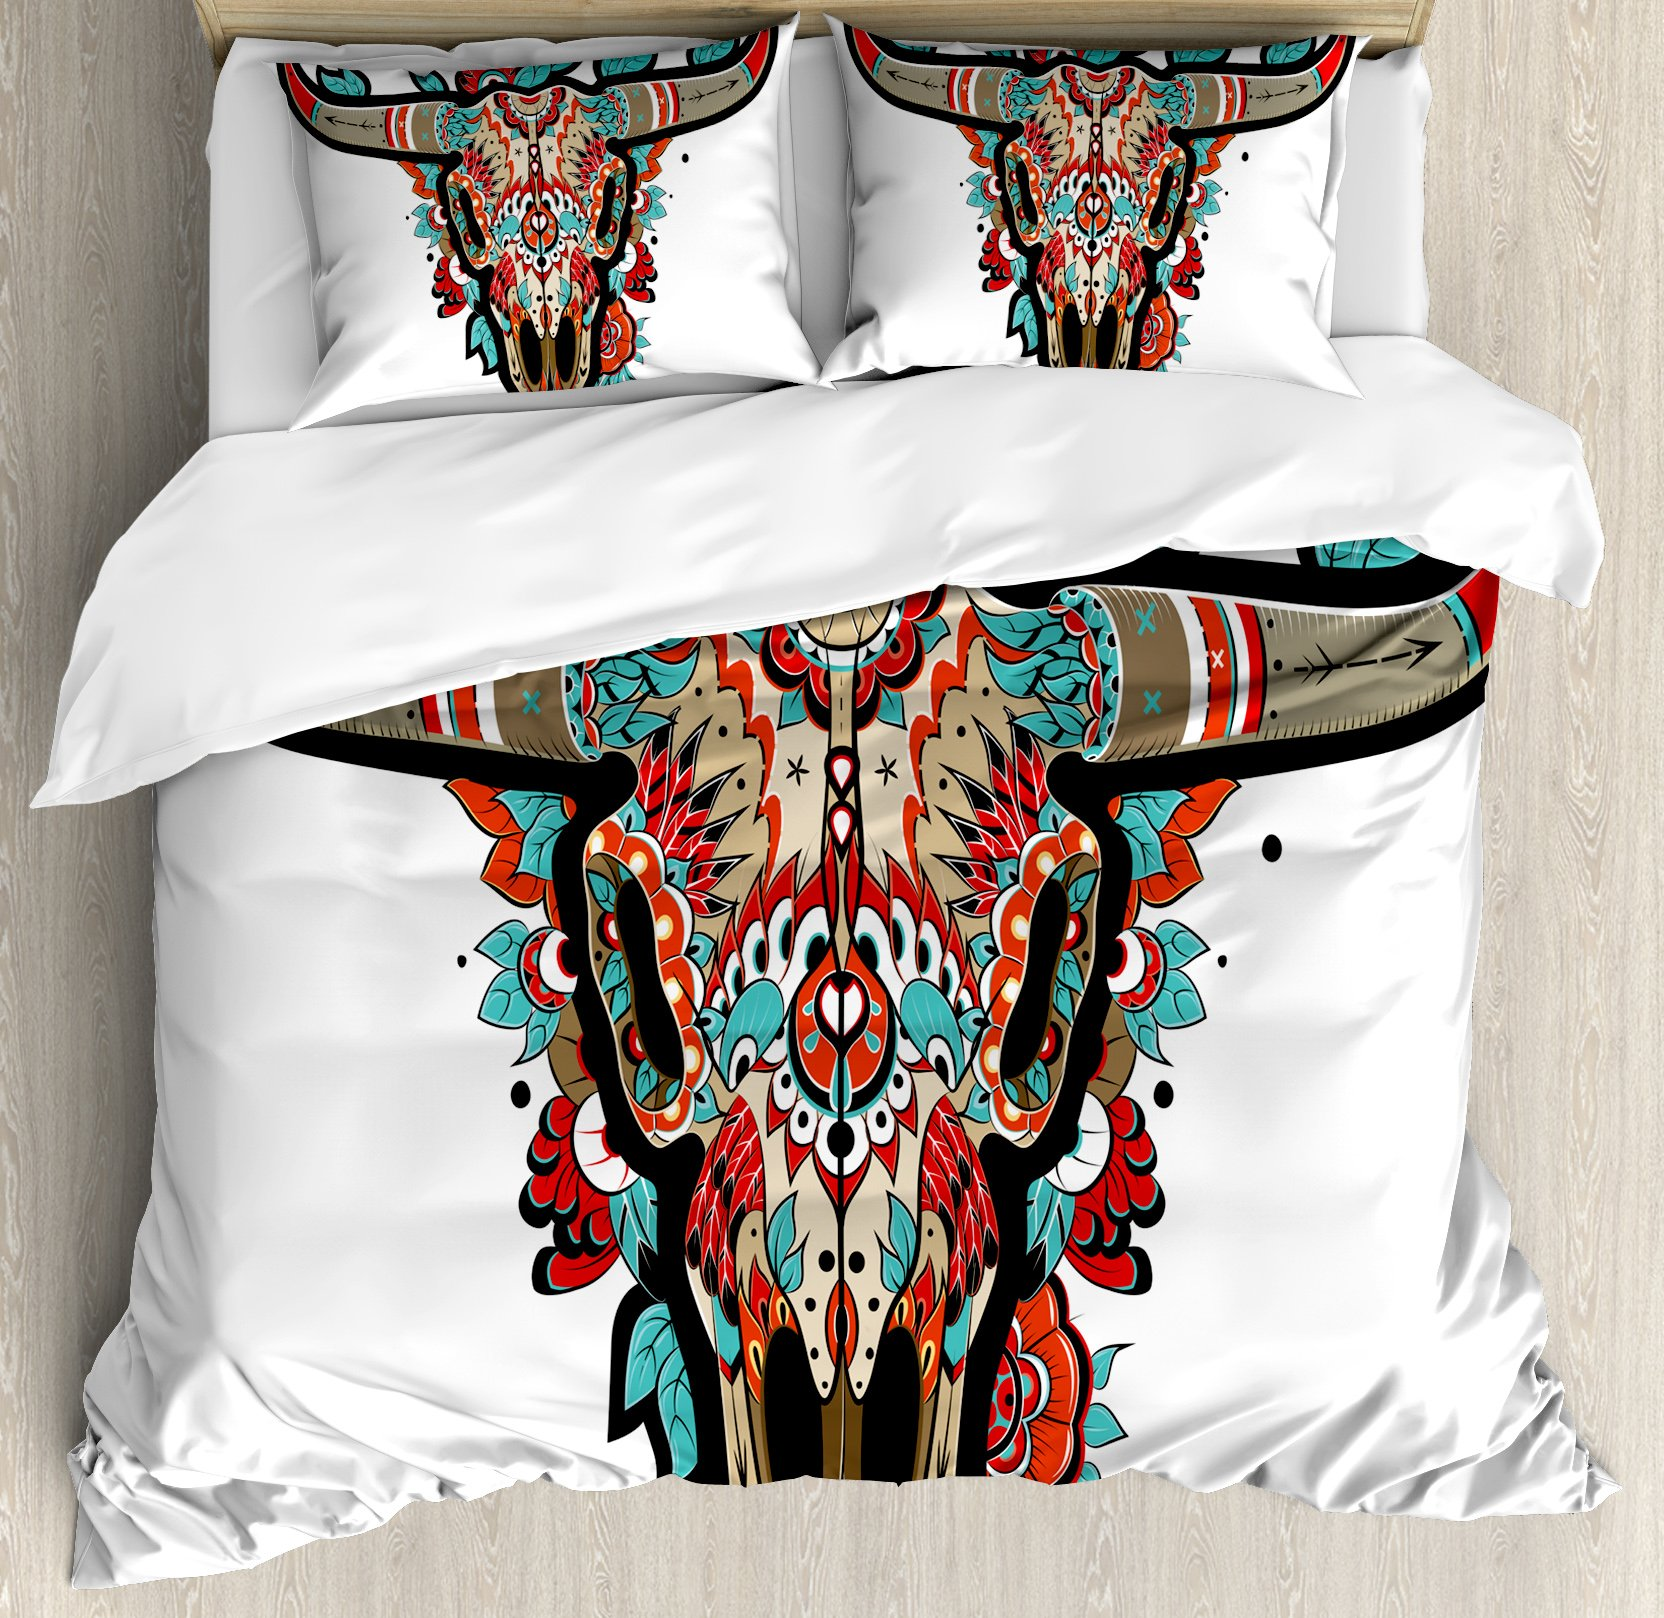 Western Duvet Cover Set Queen Size by Ambesonne, Buffalo Sugar Mexican Skull Colorful Ornate Design Horned Animal Trophy, Decorative 3 Piece Bedding Set with 2 Pillow Shams, Turquoise Red Taupe